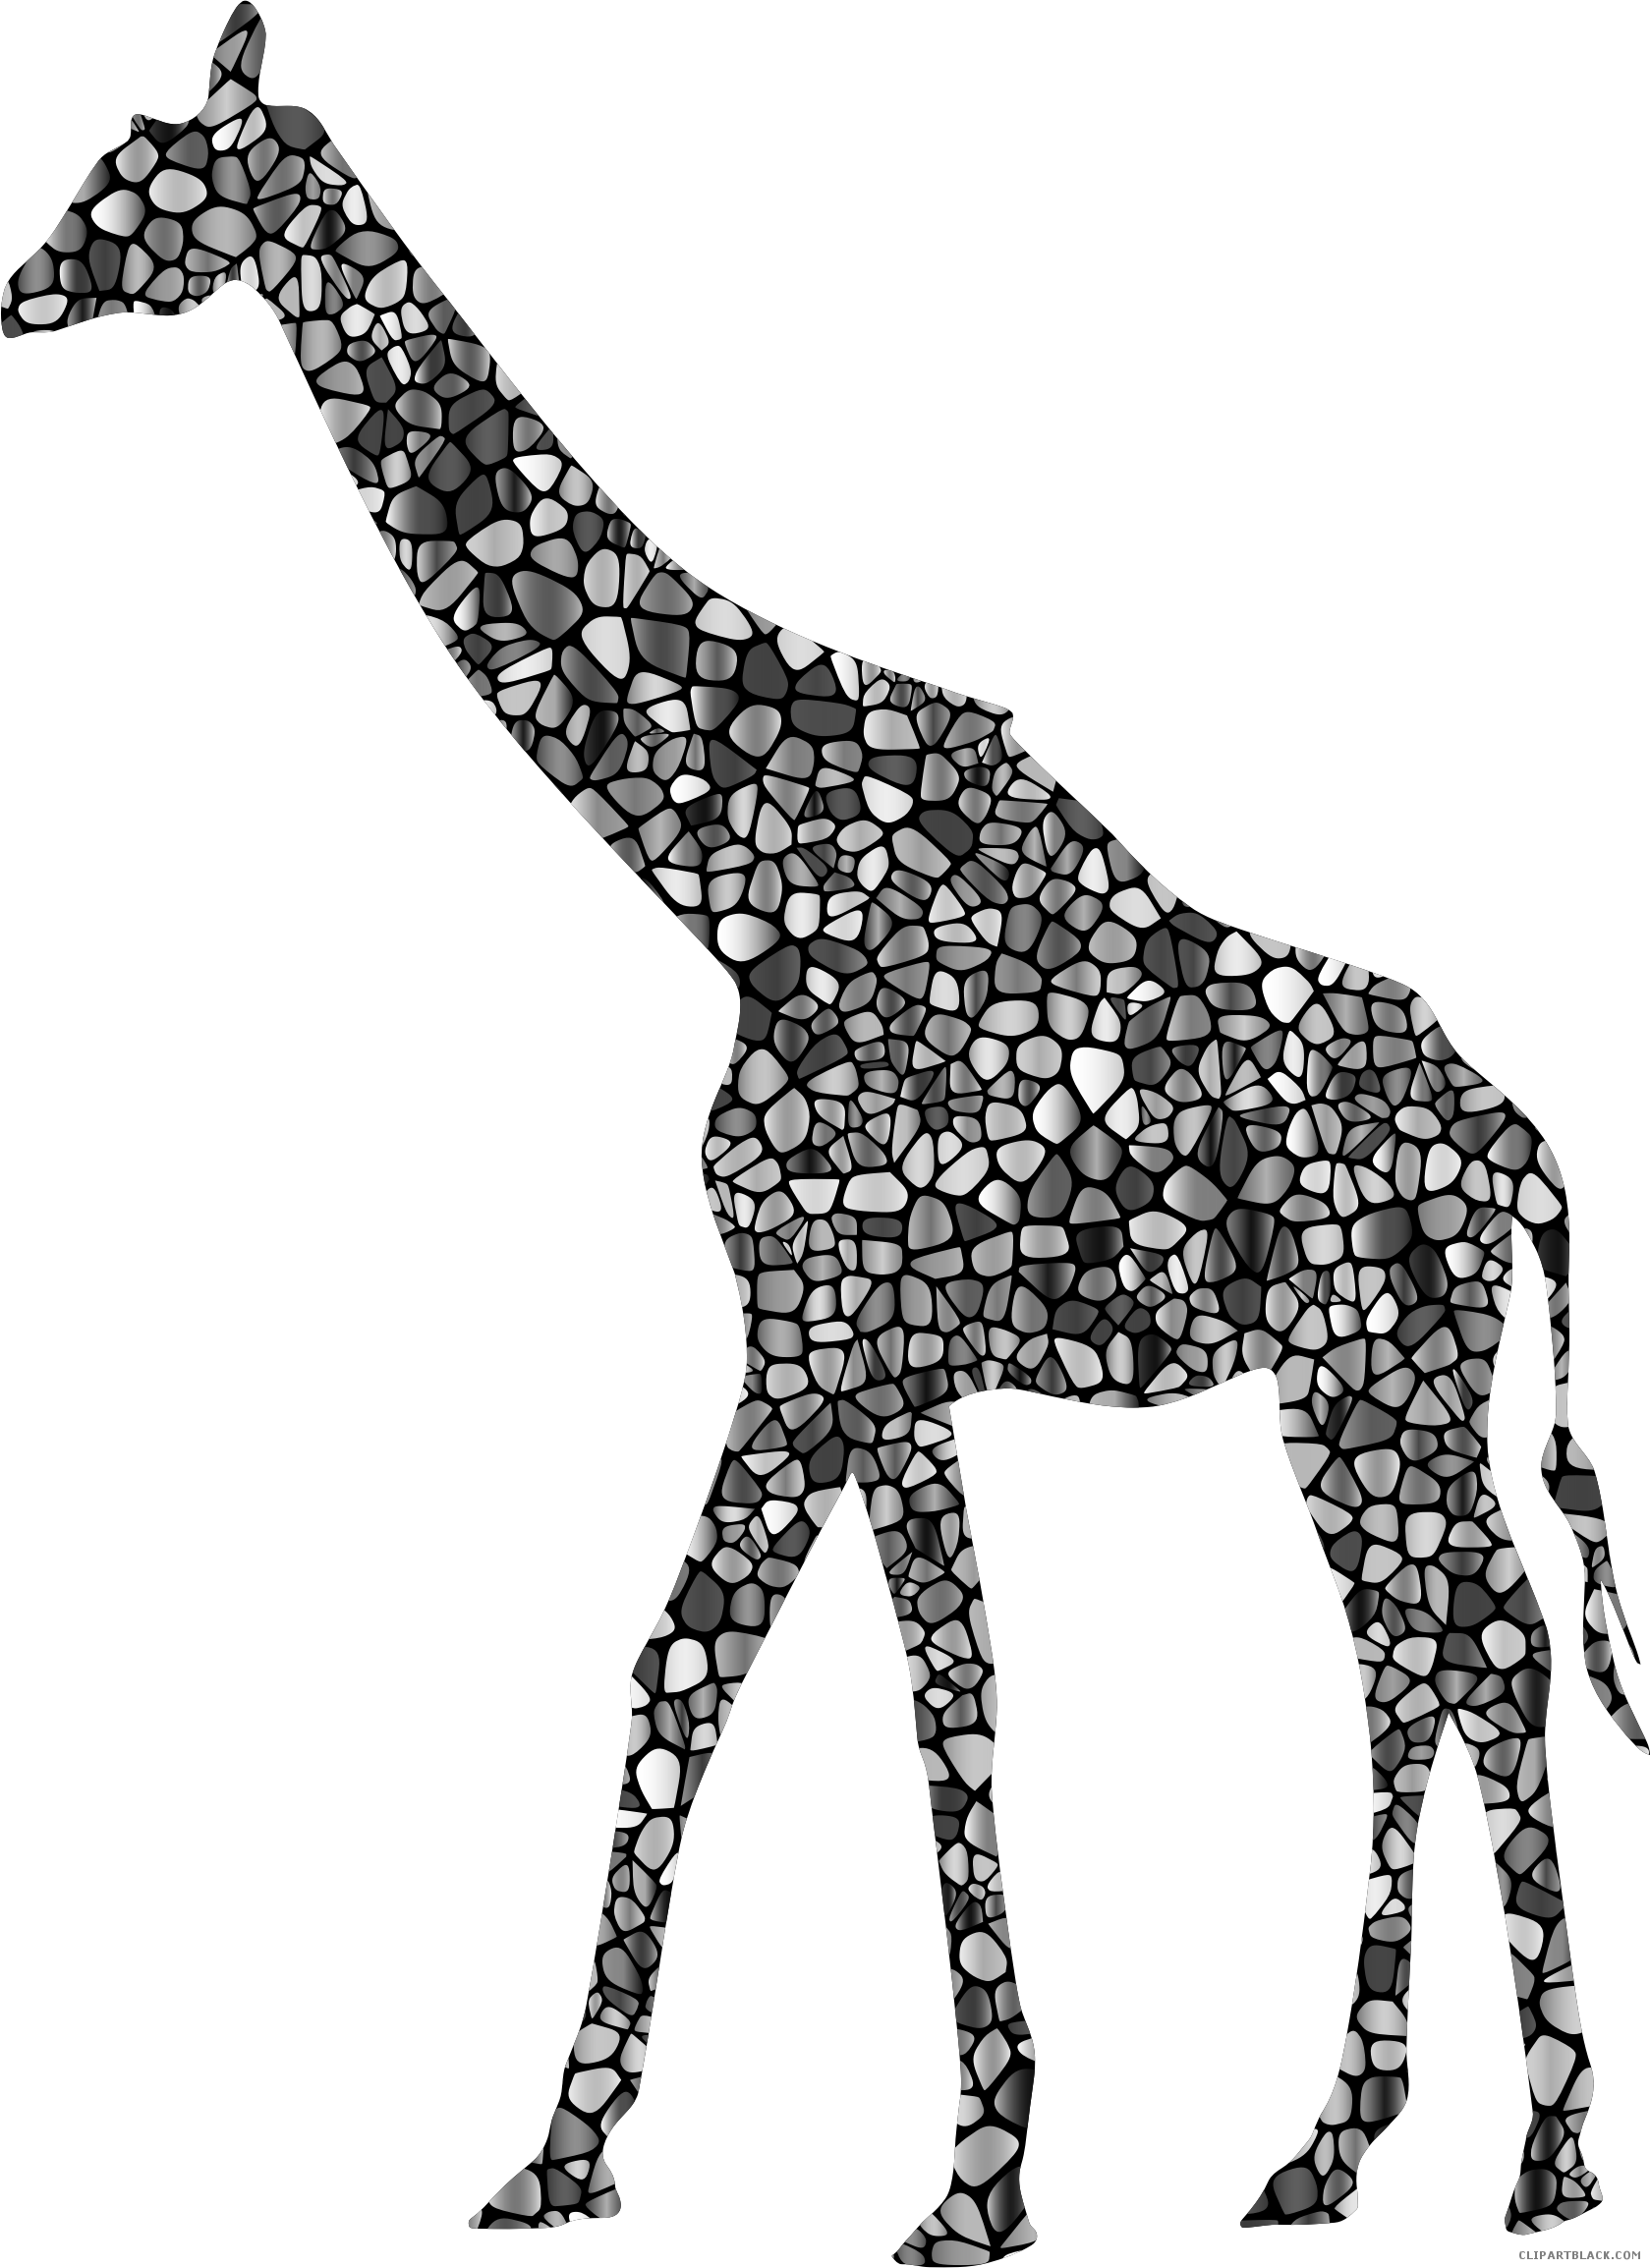 Giraffe silhouette animal free. Horseshoe clipart mustang football